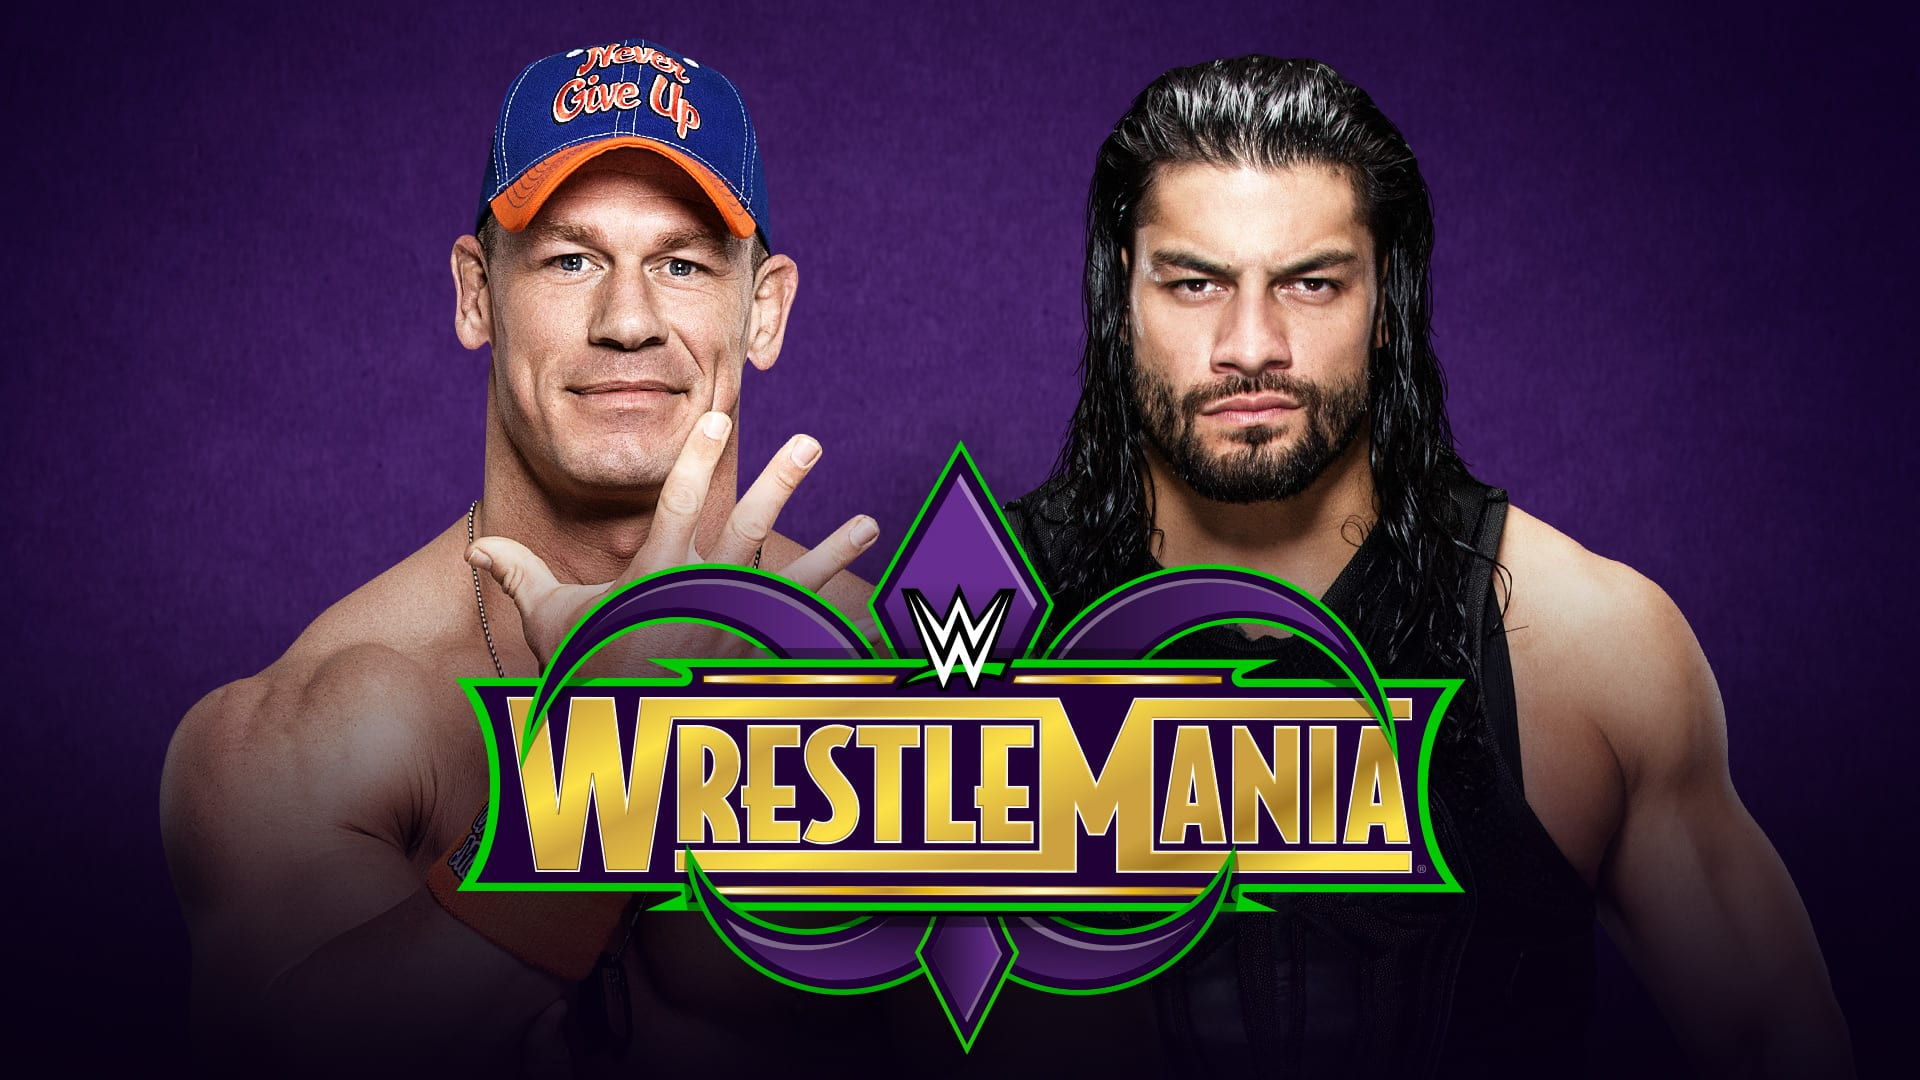 John Cena vs. Roman Reigns - WrestleMania 34